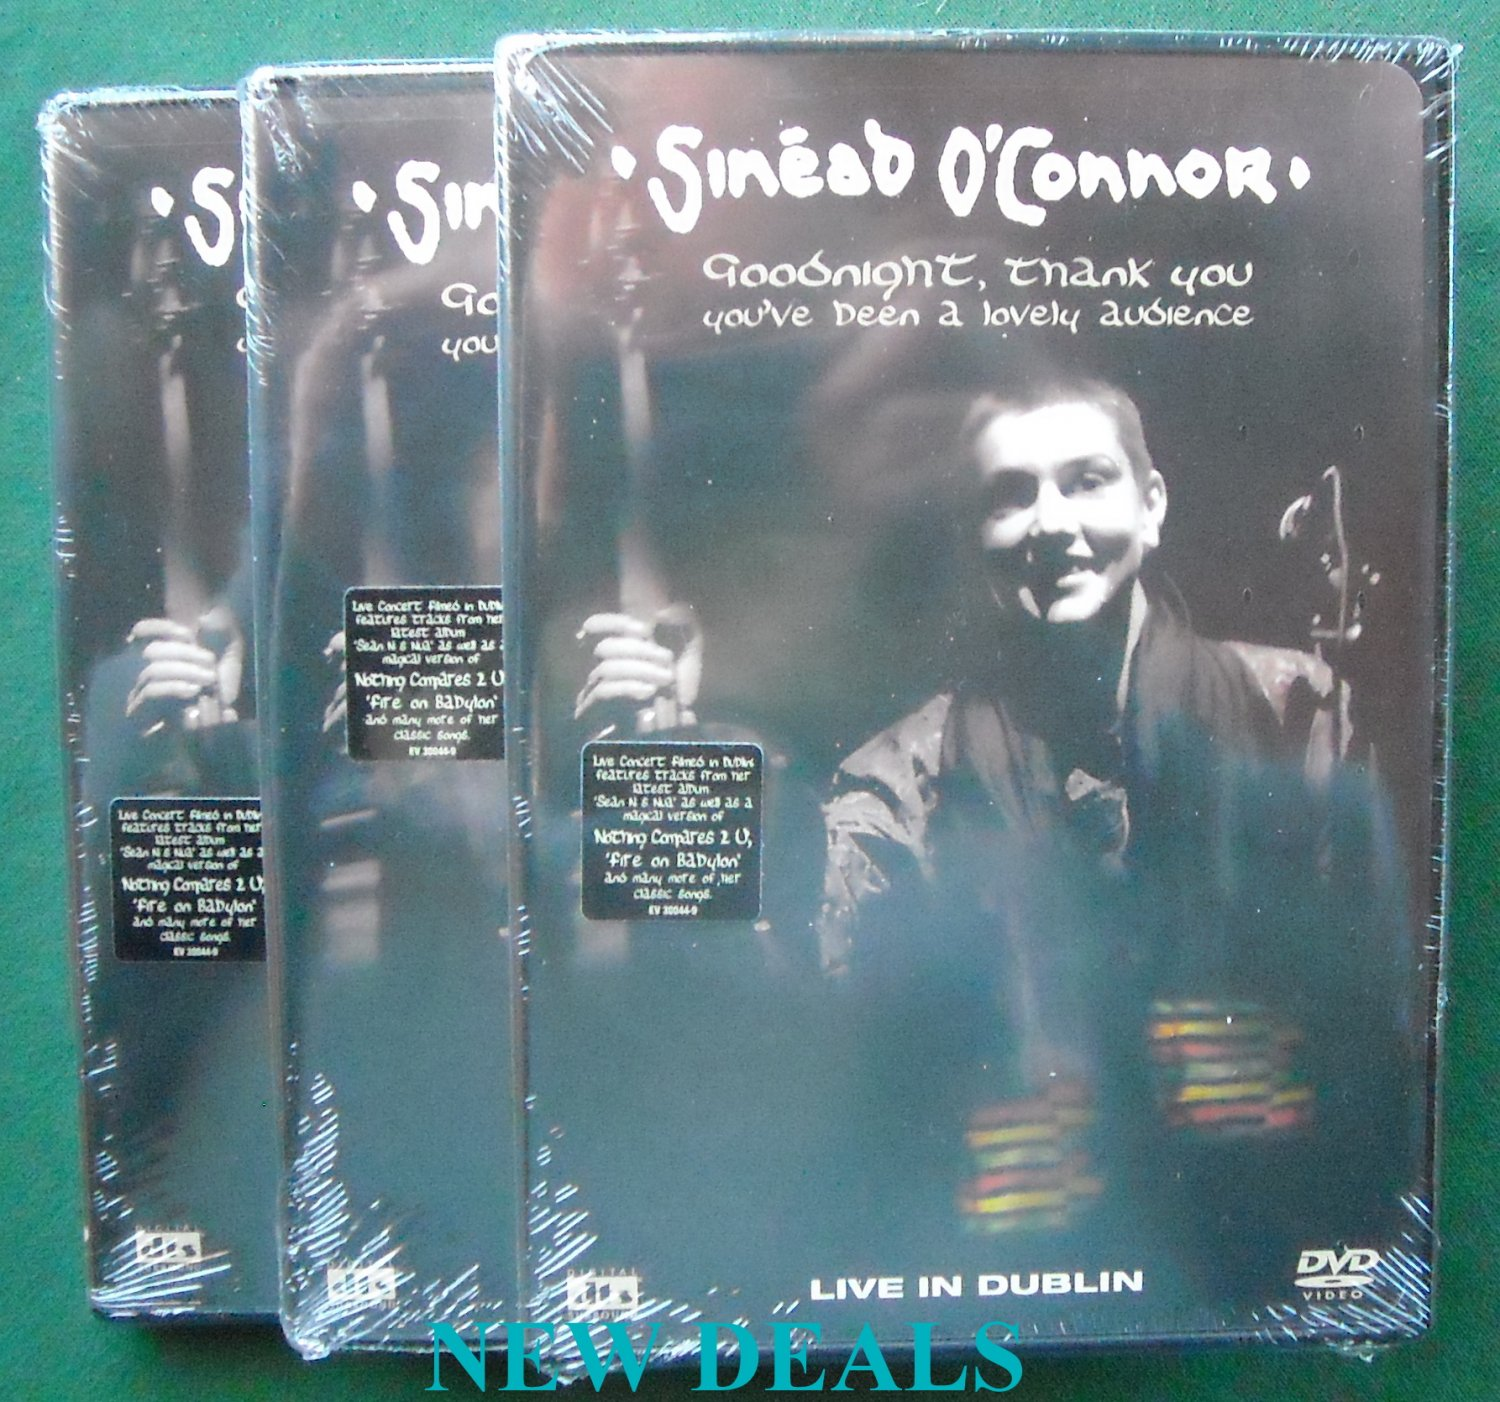 Lot of 3 Sinead O'Connor Goodnight Thank music DVD 801213004492